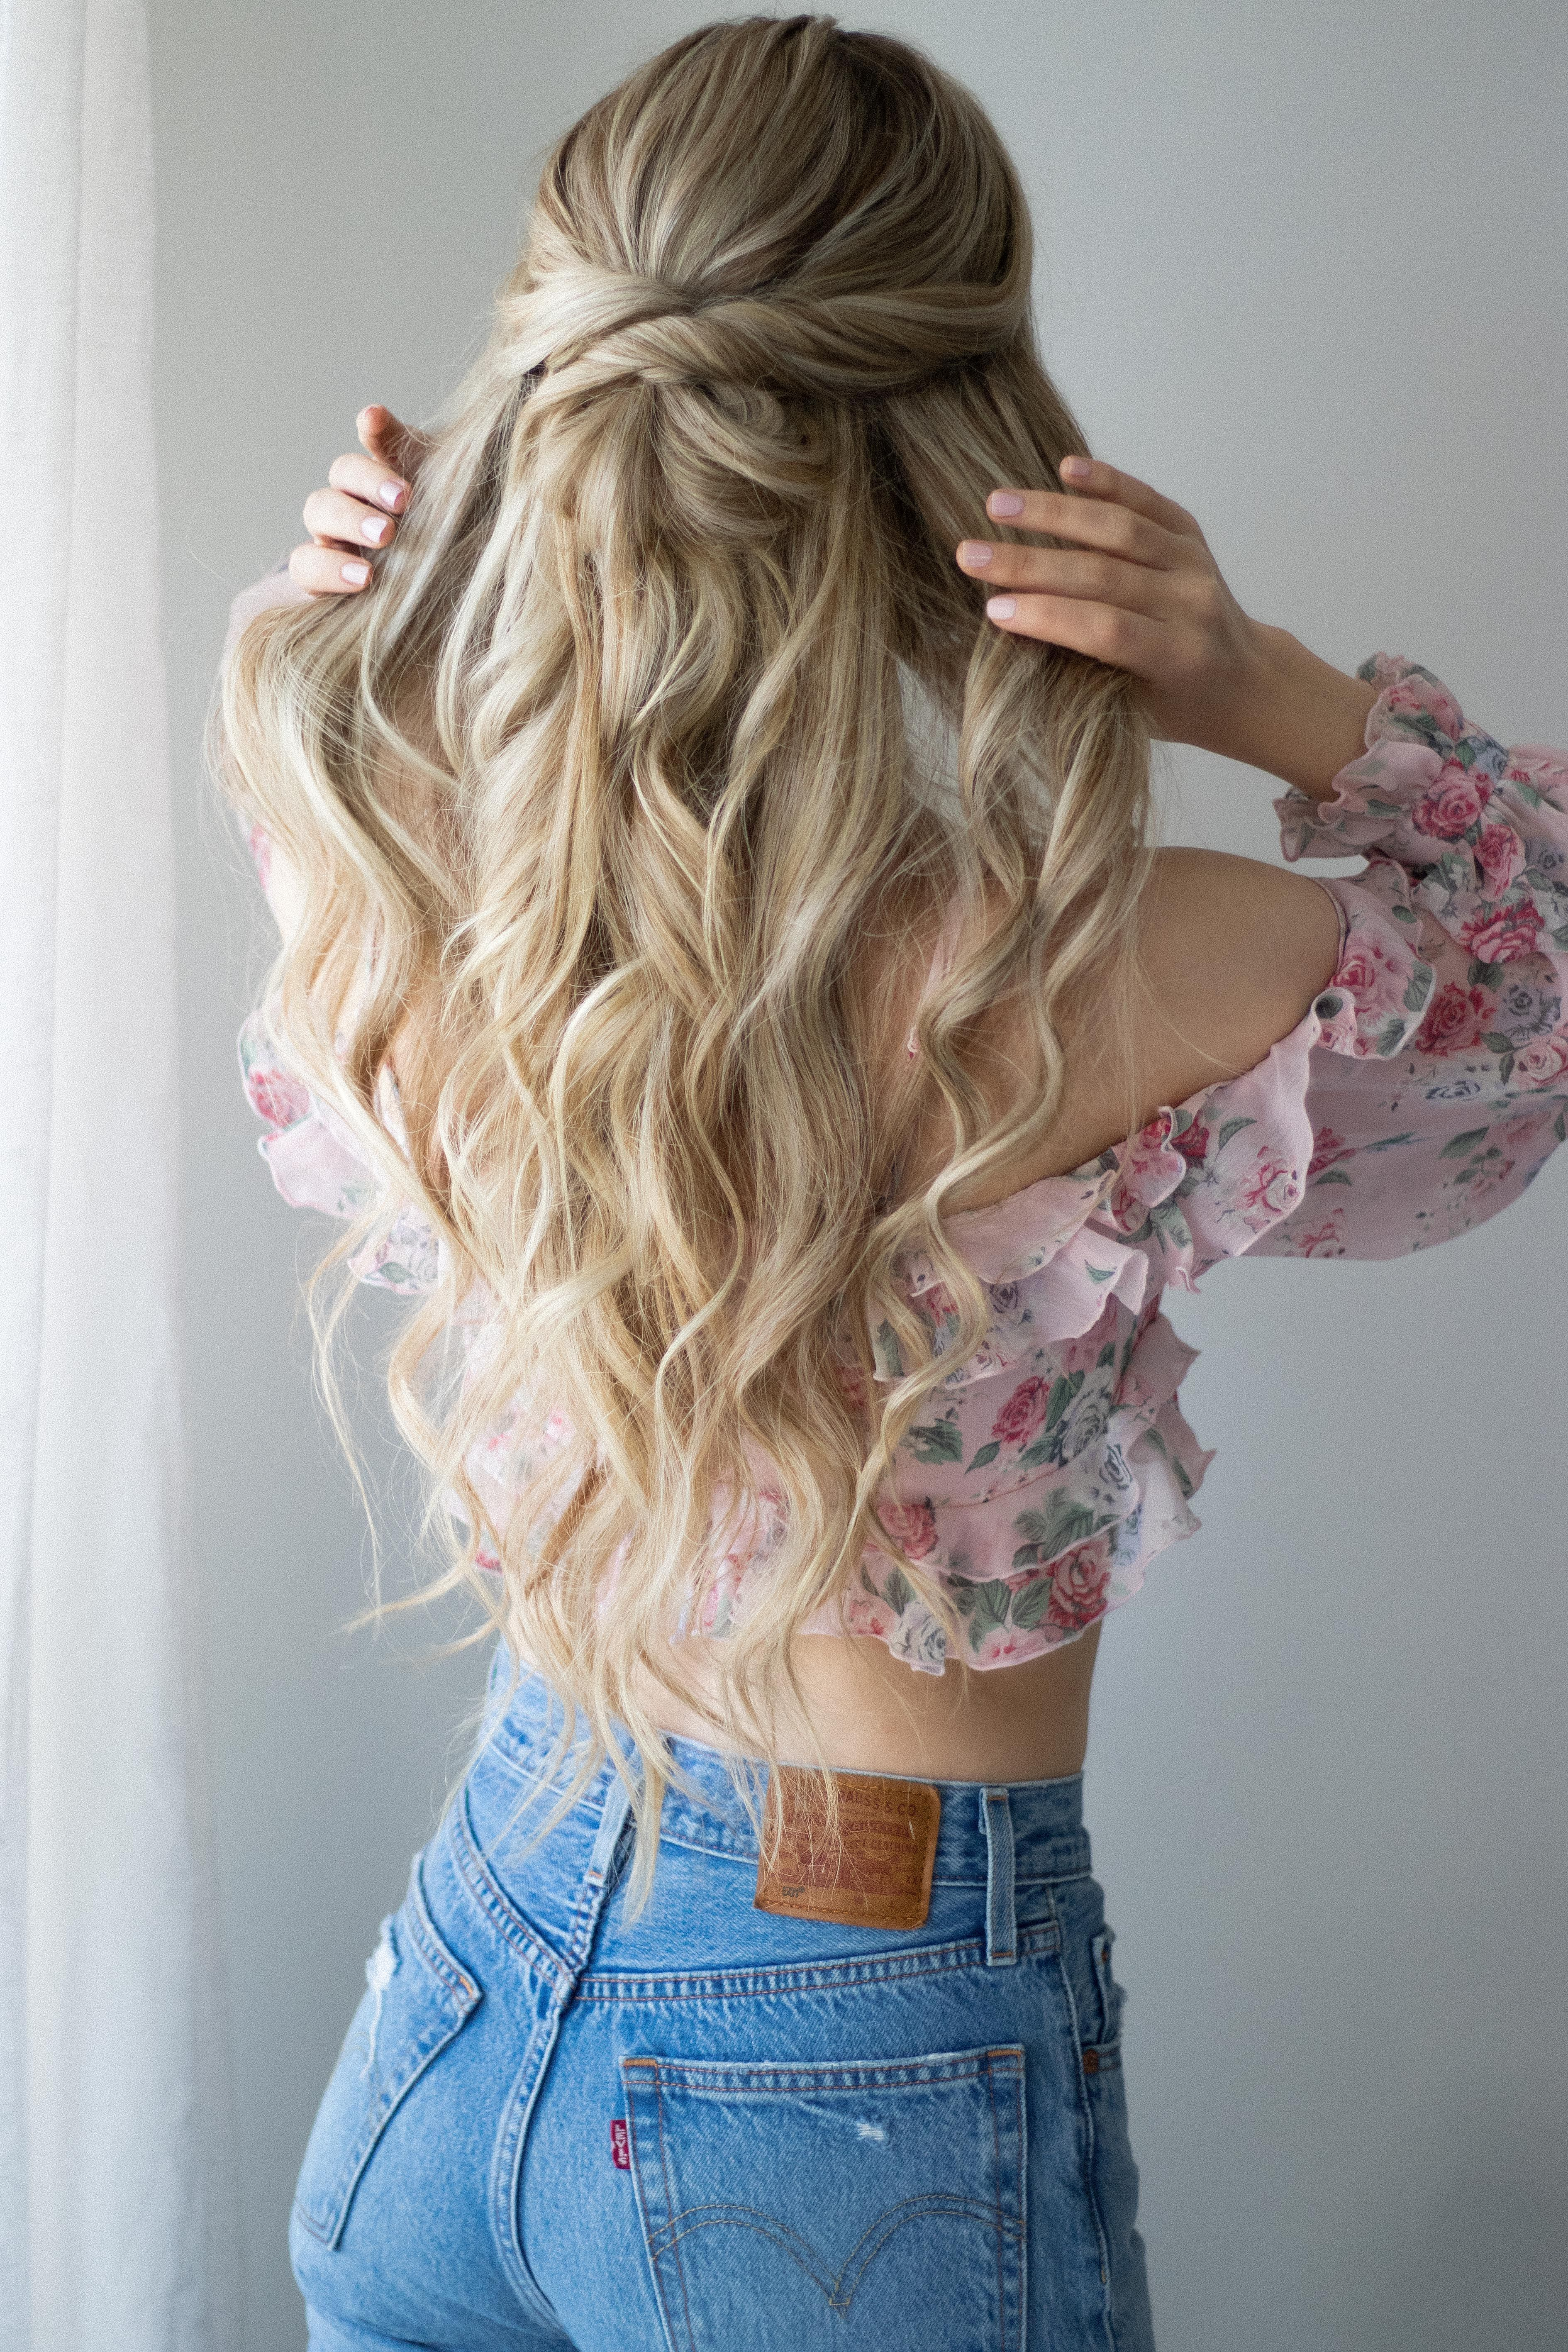 3 Easy Summer Hairstyles For 2019 With Tutorial Www Alexgaboury Com Summer Hairstyles Easy Summer Hairstyles Down Hairstyles